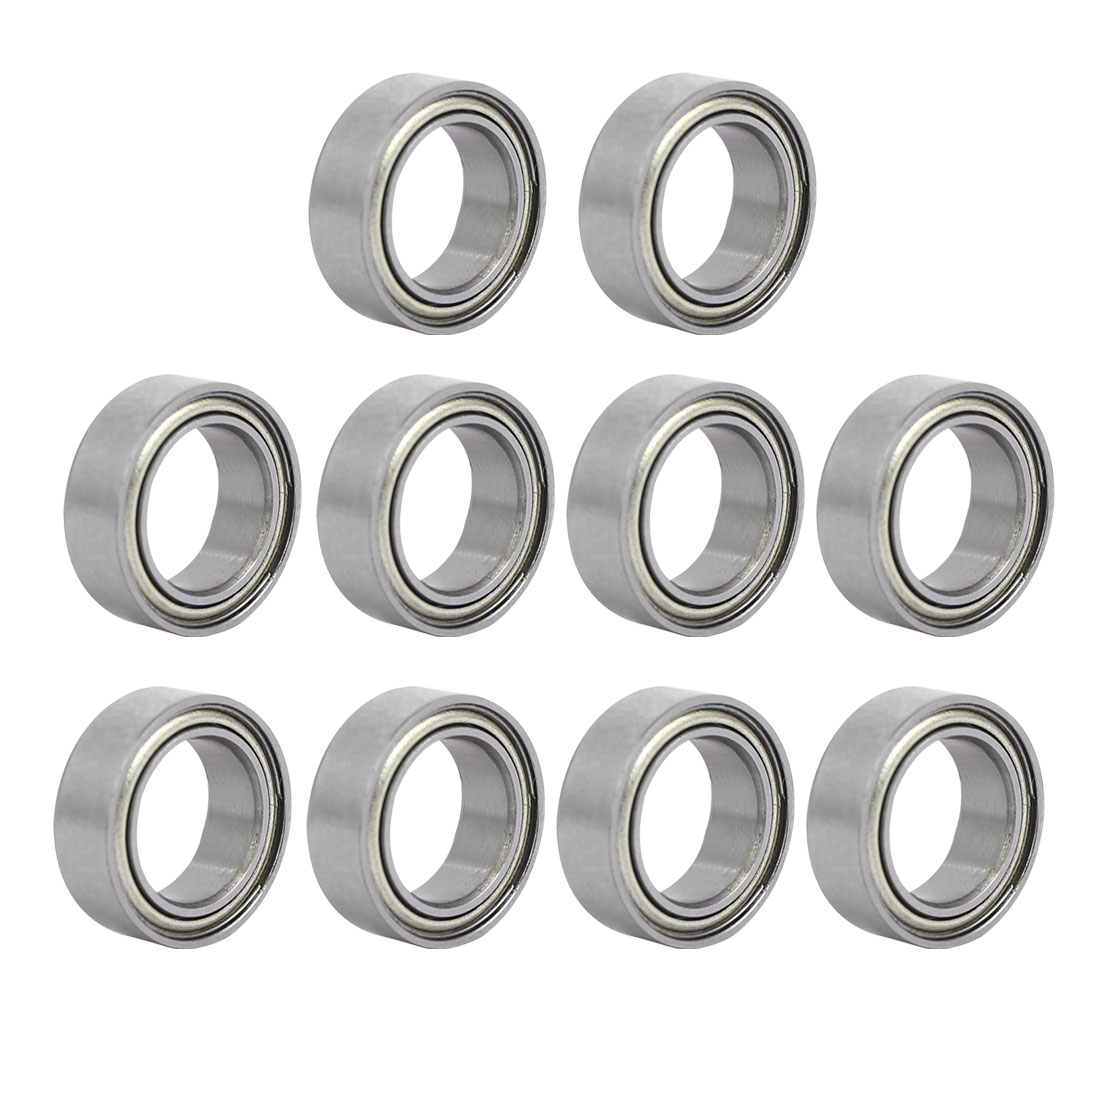 MR149ZZ 14mmx10mmx4.5mm Single Row Double Shielded Deep Groove Ball Bearings 10pcs